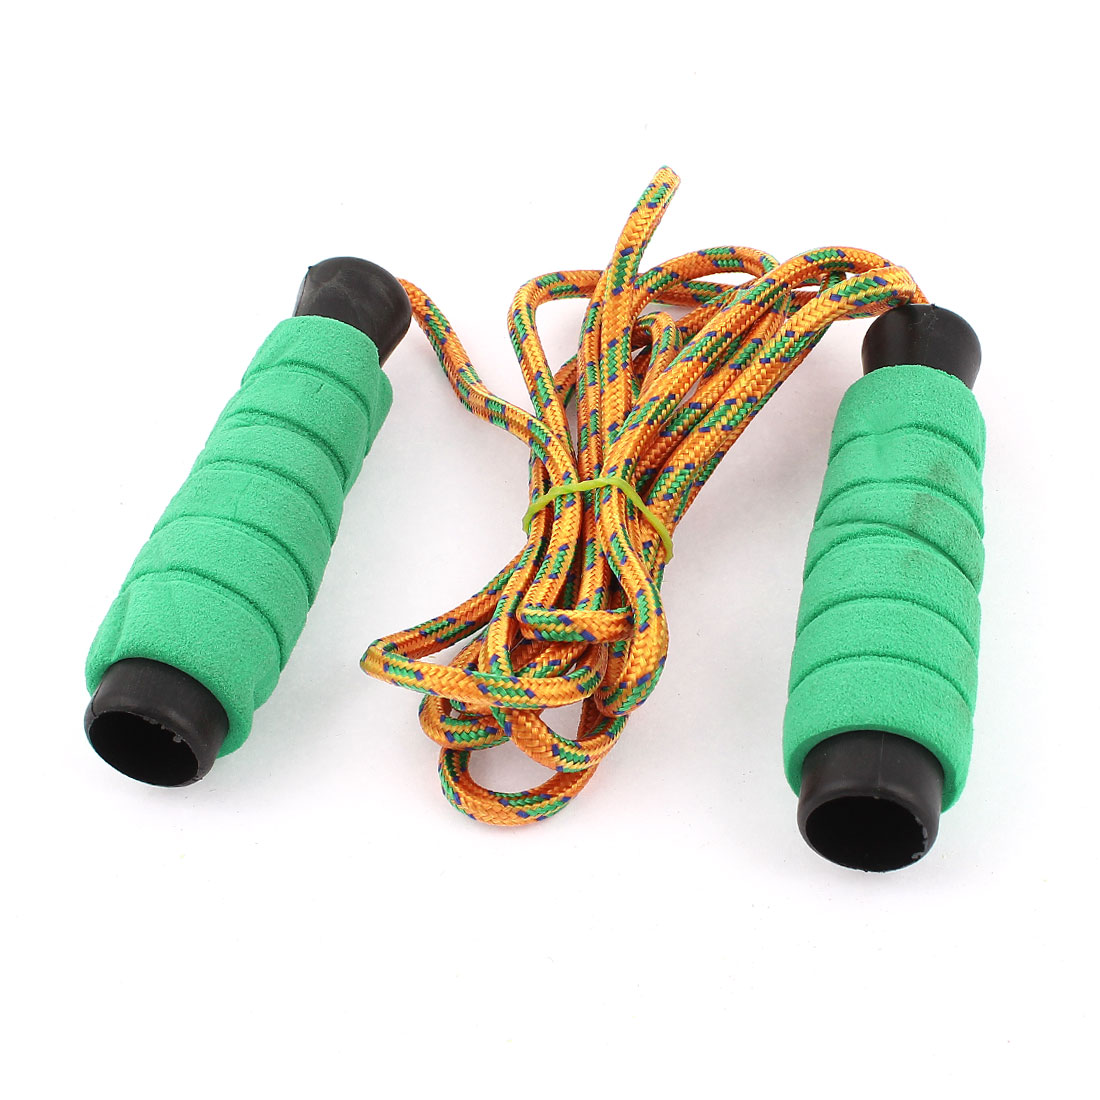 Foam Coated Handle Exercise Training Jumping Skipping Rope 2M Length Green Orange